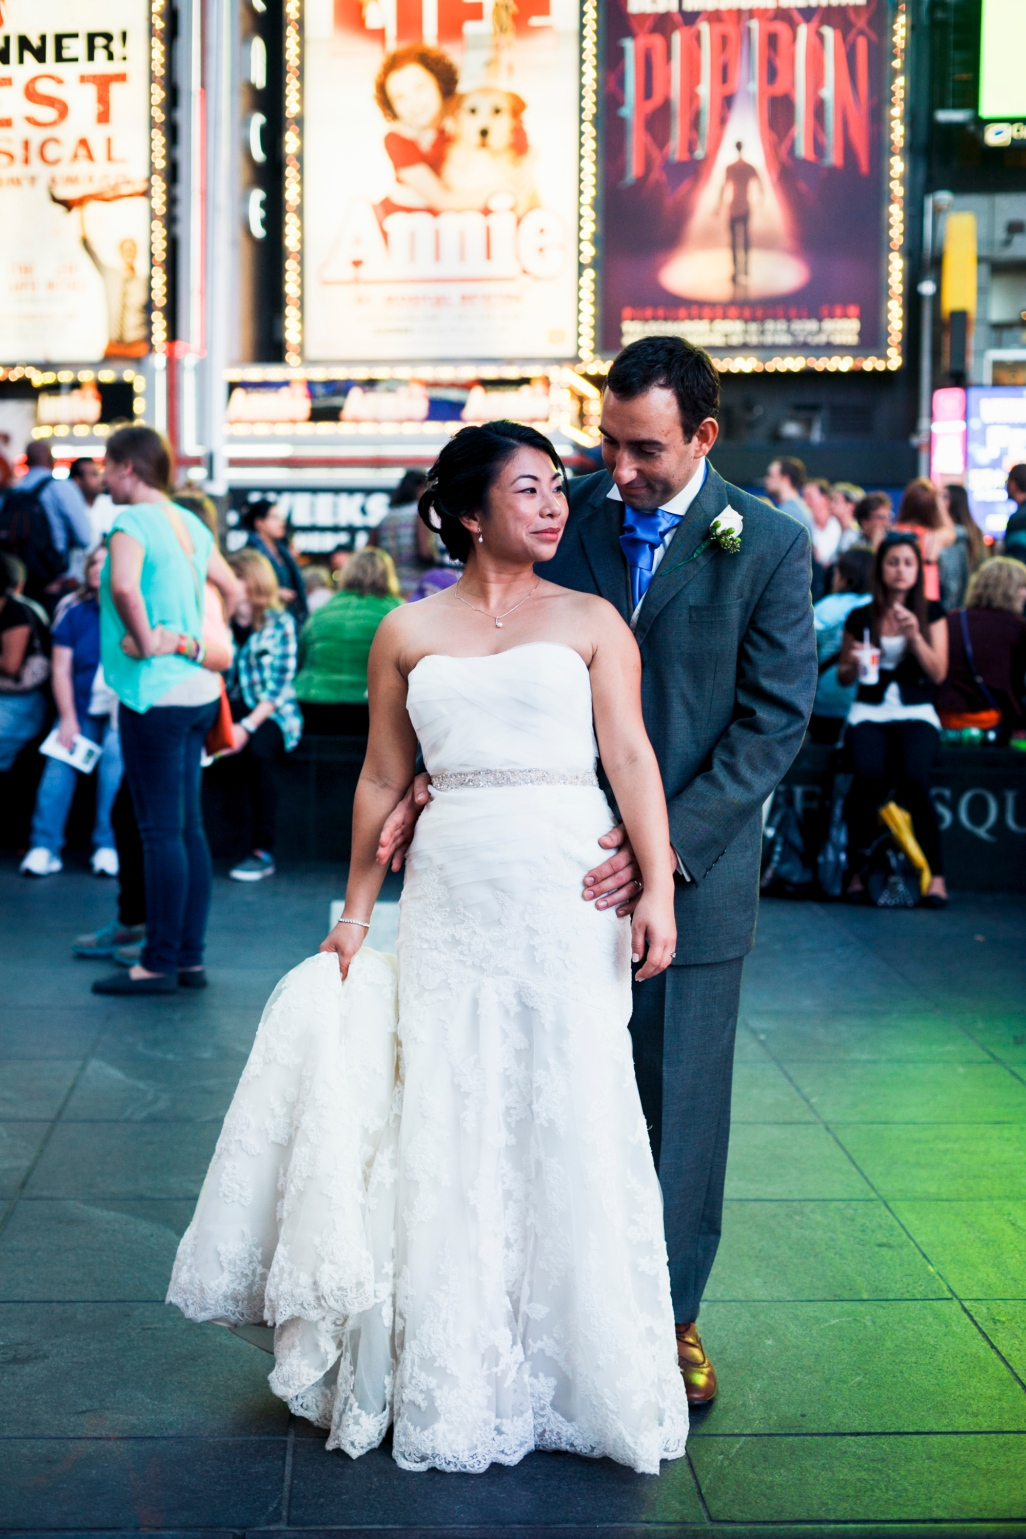 ELOPEMENT-Richard+and+Catherin-2839679436-O